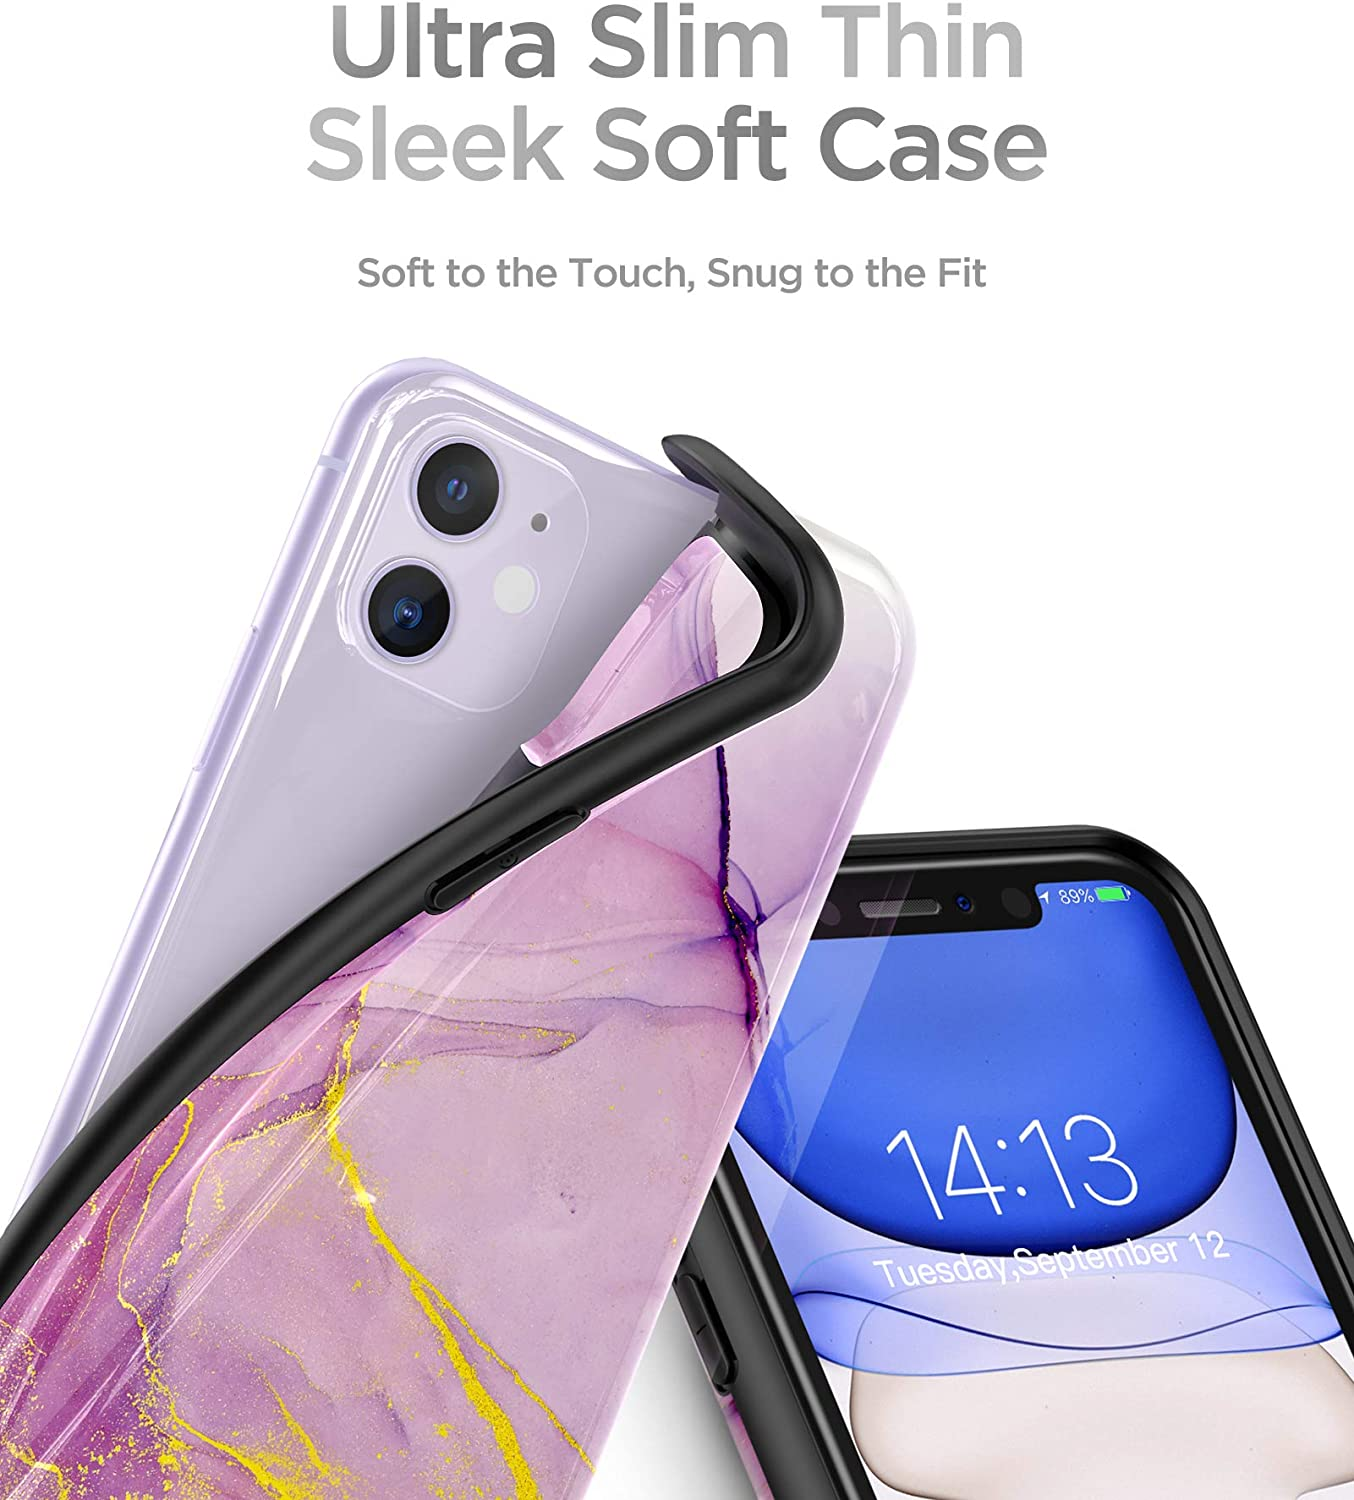 GVIEWIN Marble Compatible with iPhone 11 Case, Ultra Slim Thin Glossy Soft TPU Rubber Gel Phone Case Cover Compatible with iPhone 11 6.1 Inch 2019 (Romantic Purple)